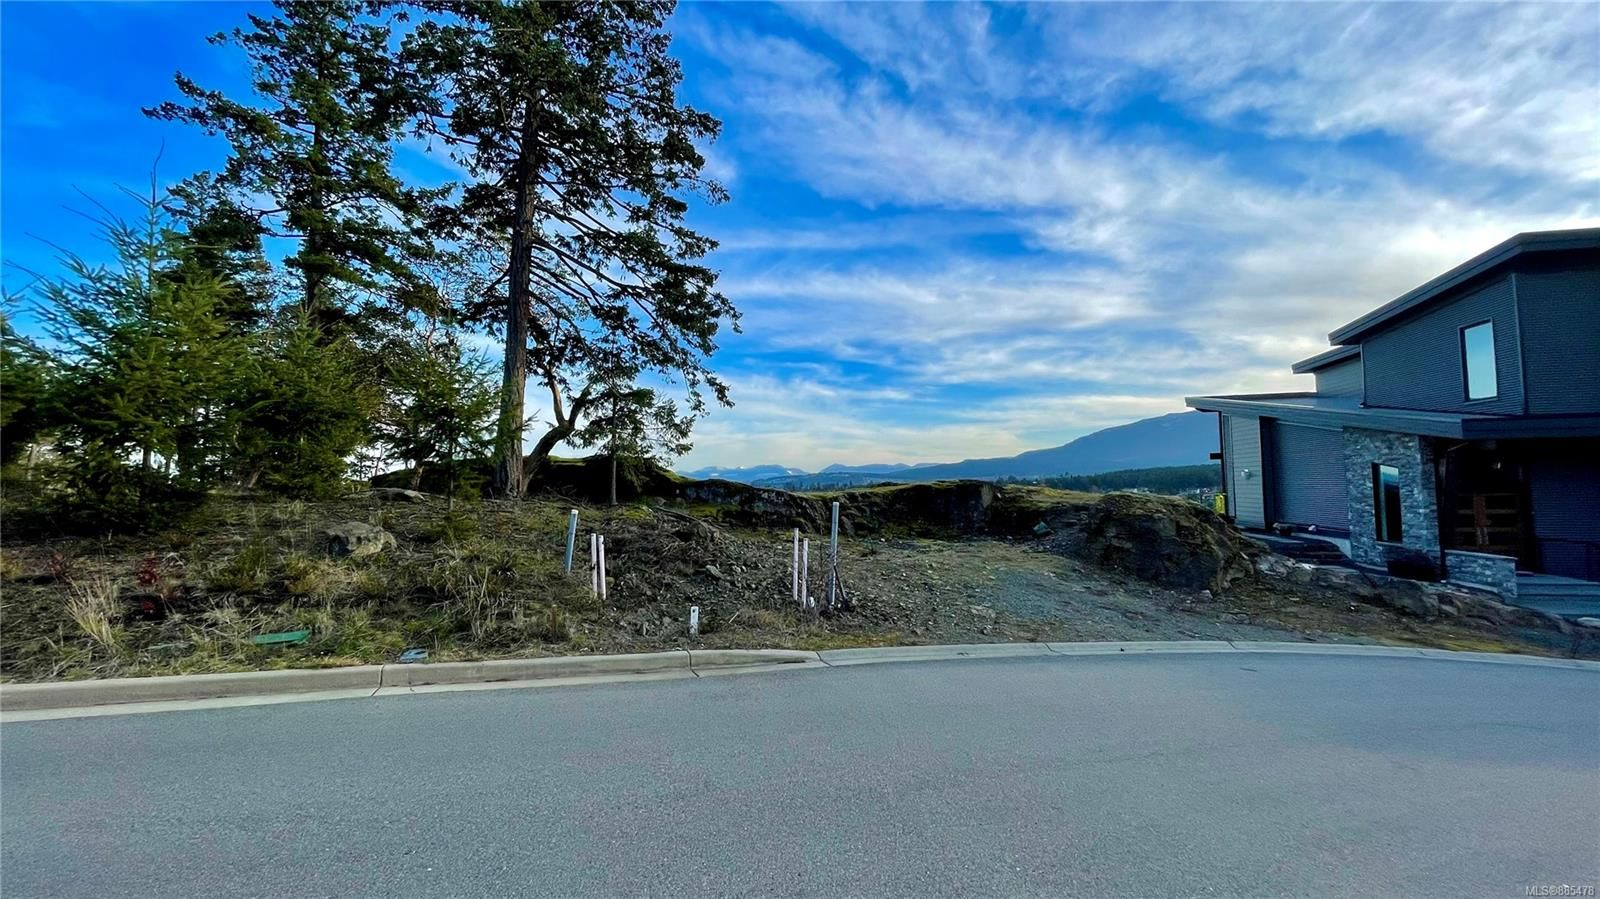 Photo 6: Photos: 103 Amphion Terr in : Na Departure Bay Land for sale (Nanaimo)  : MLS®# 885478